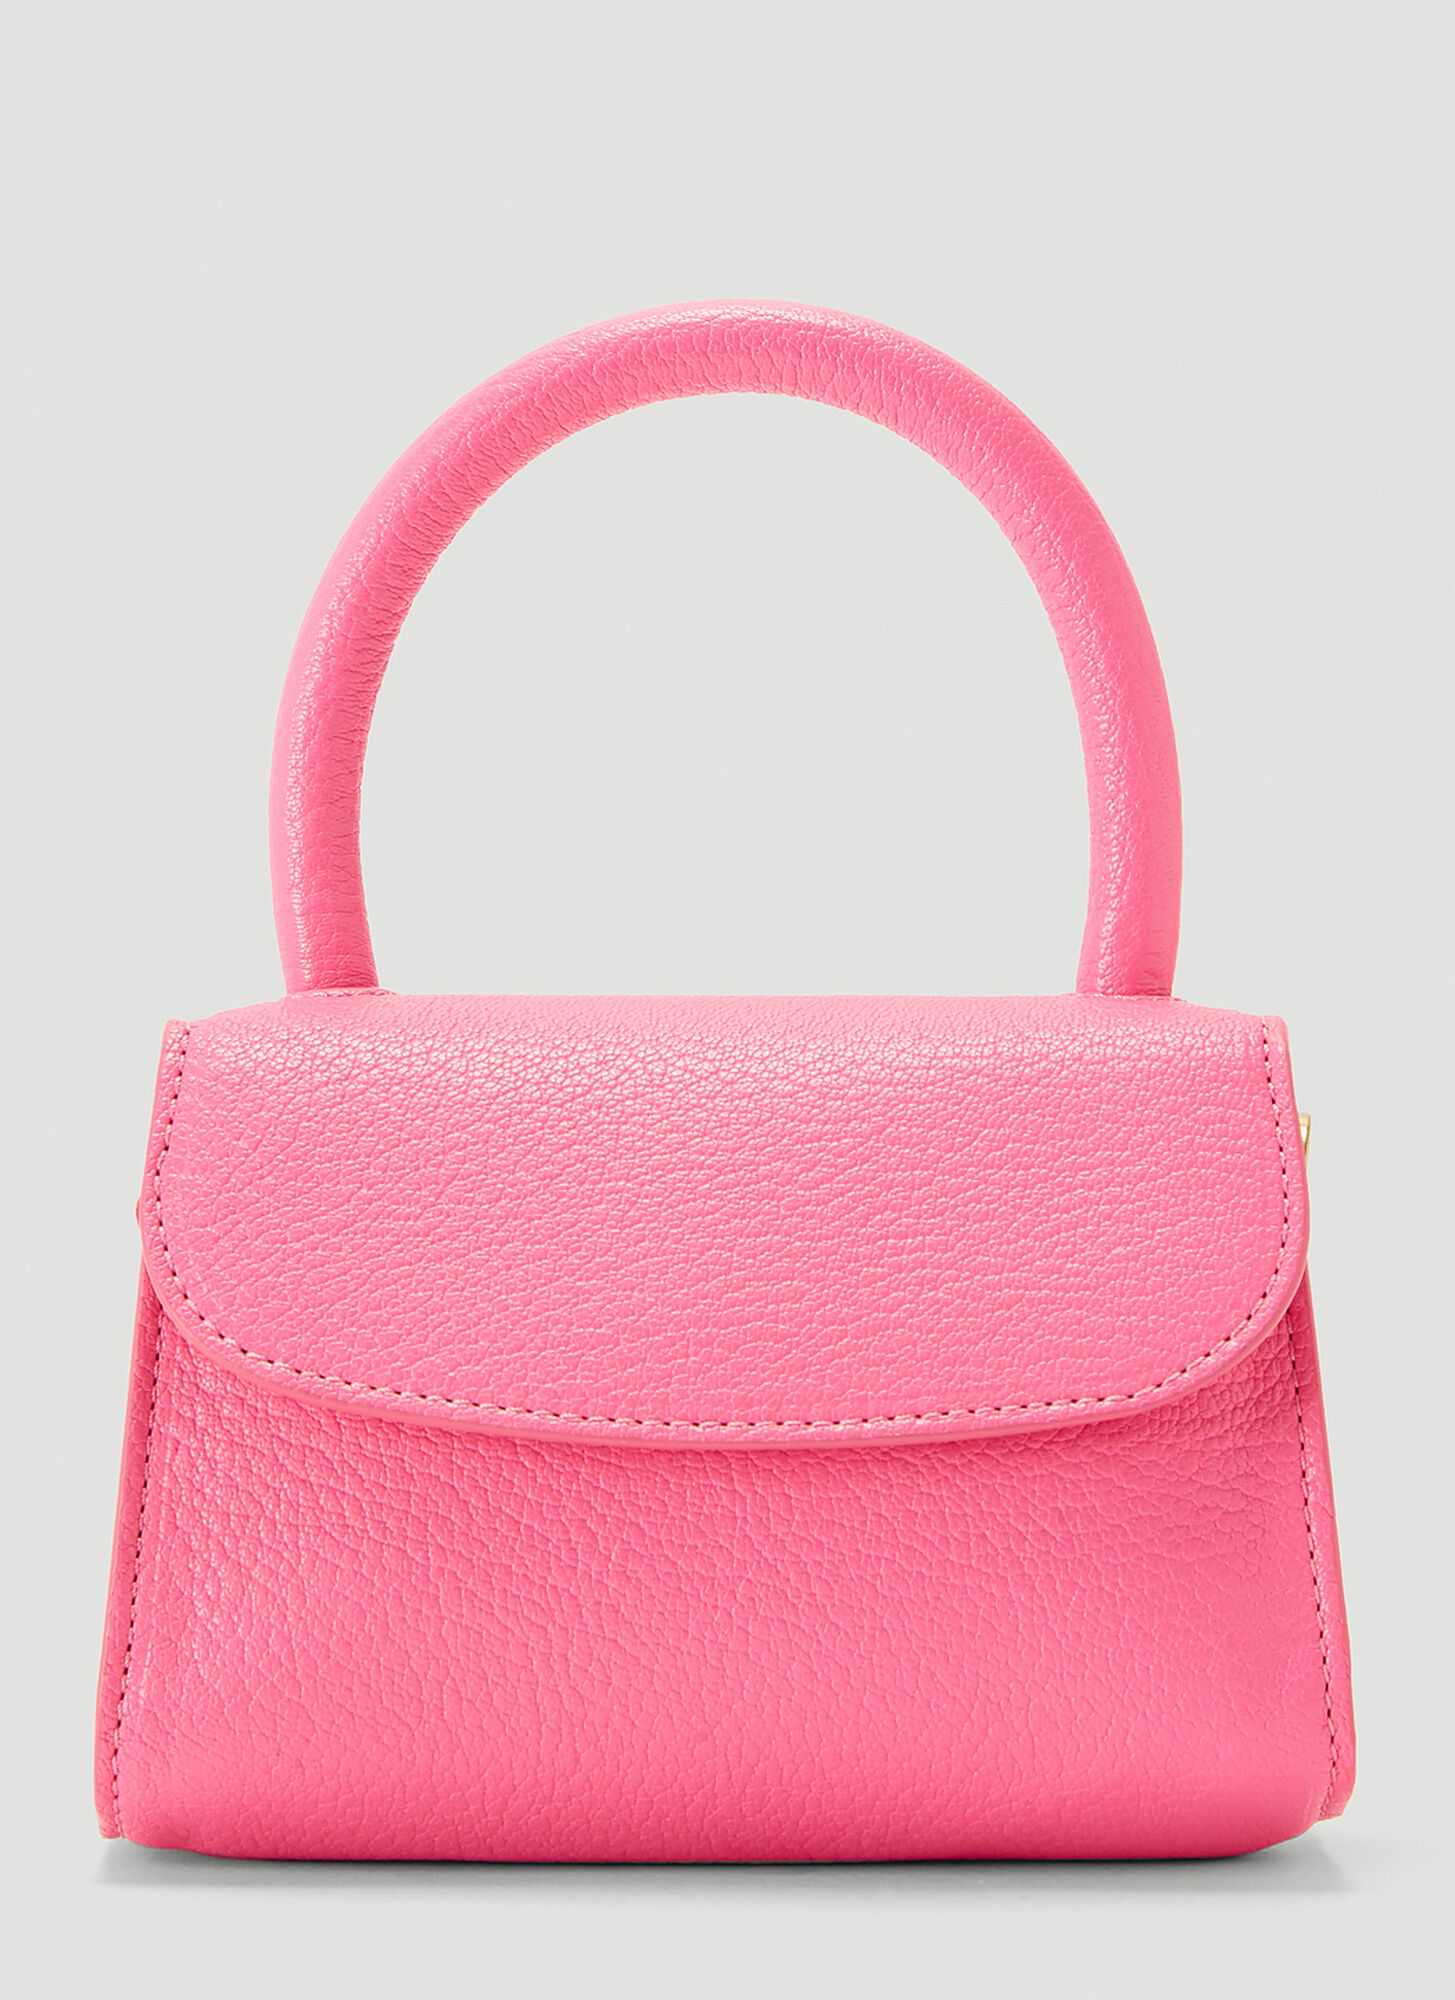 by Far Mini Grained Leather Bag in Pink